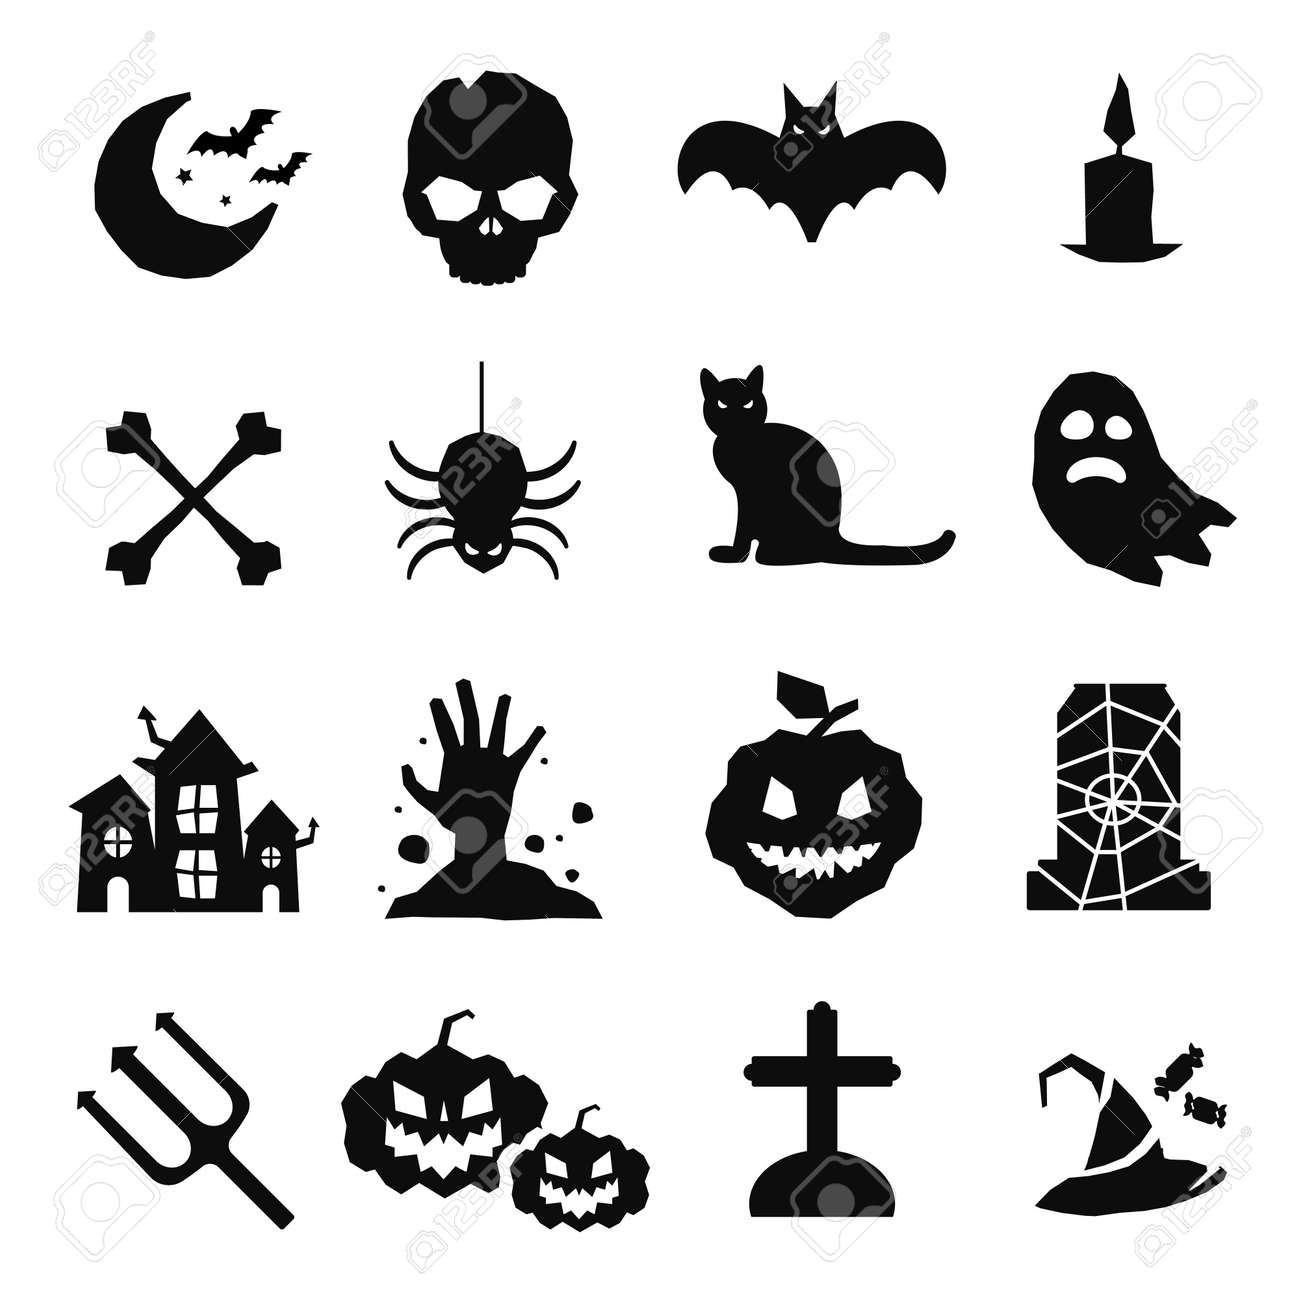 halloween vector icons set pumpkin head witch broom candy rh 123rf com Free Halloween Vector Graphics Halloween Cartoon Vector Free